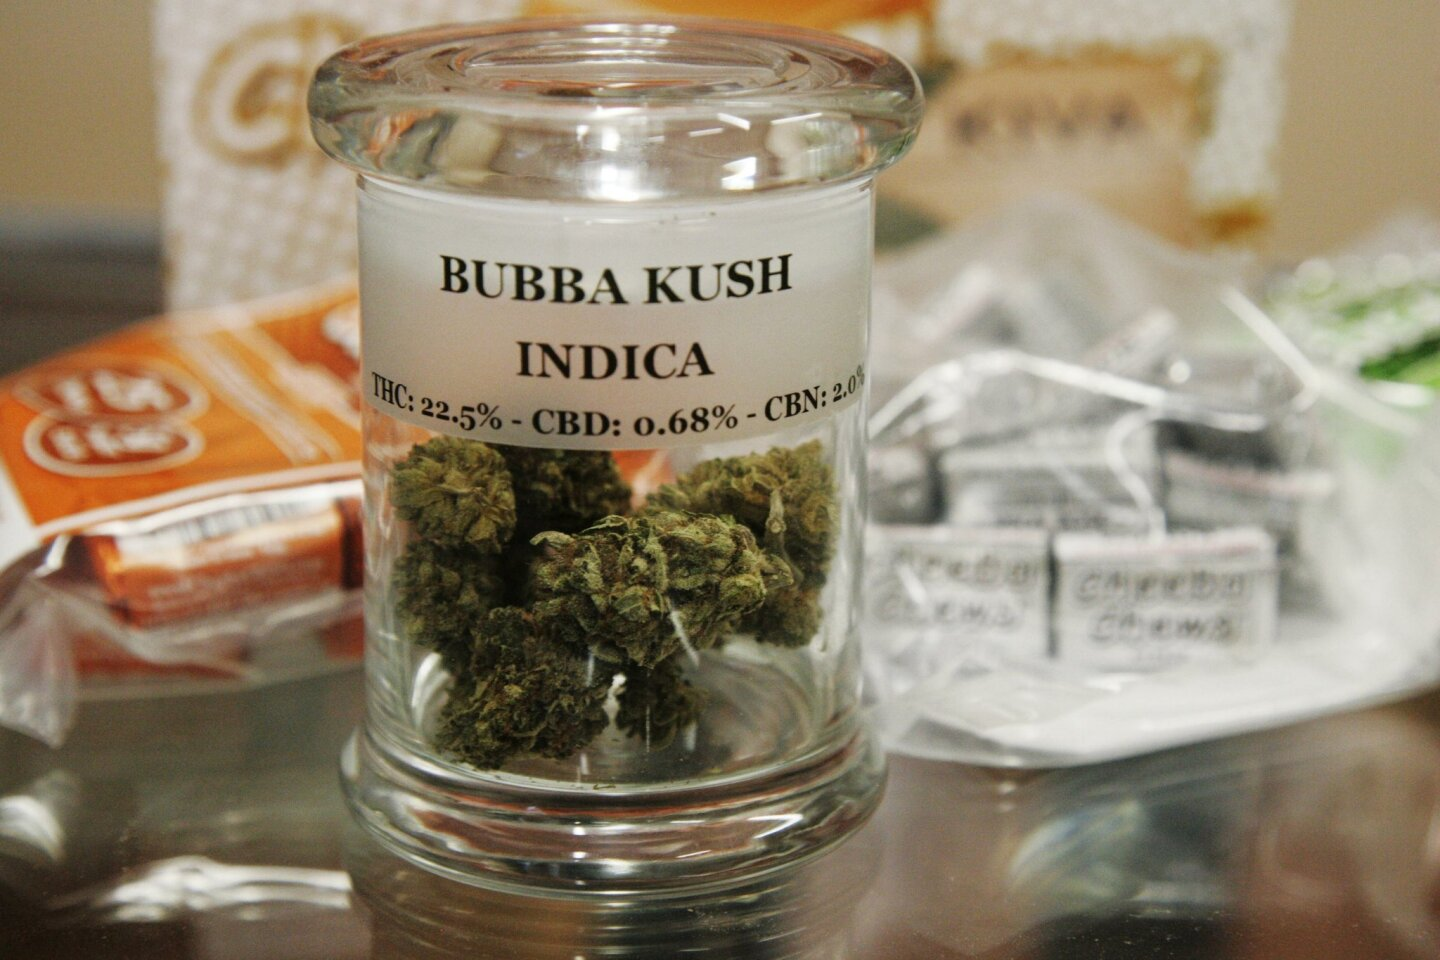 The first legal medical marijuana dispensary, A Green Alternative, is preparing to open in an Otay Mesa strip mall on Friday, March 20. These are some of the products that they will be selling when they open.